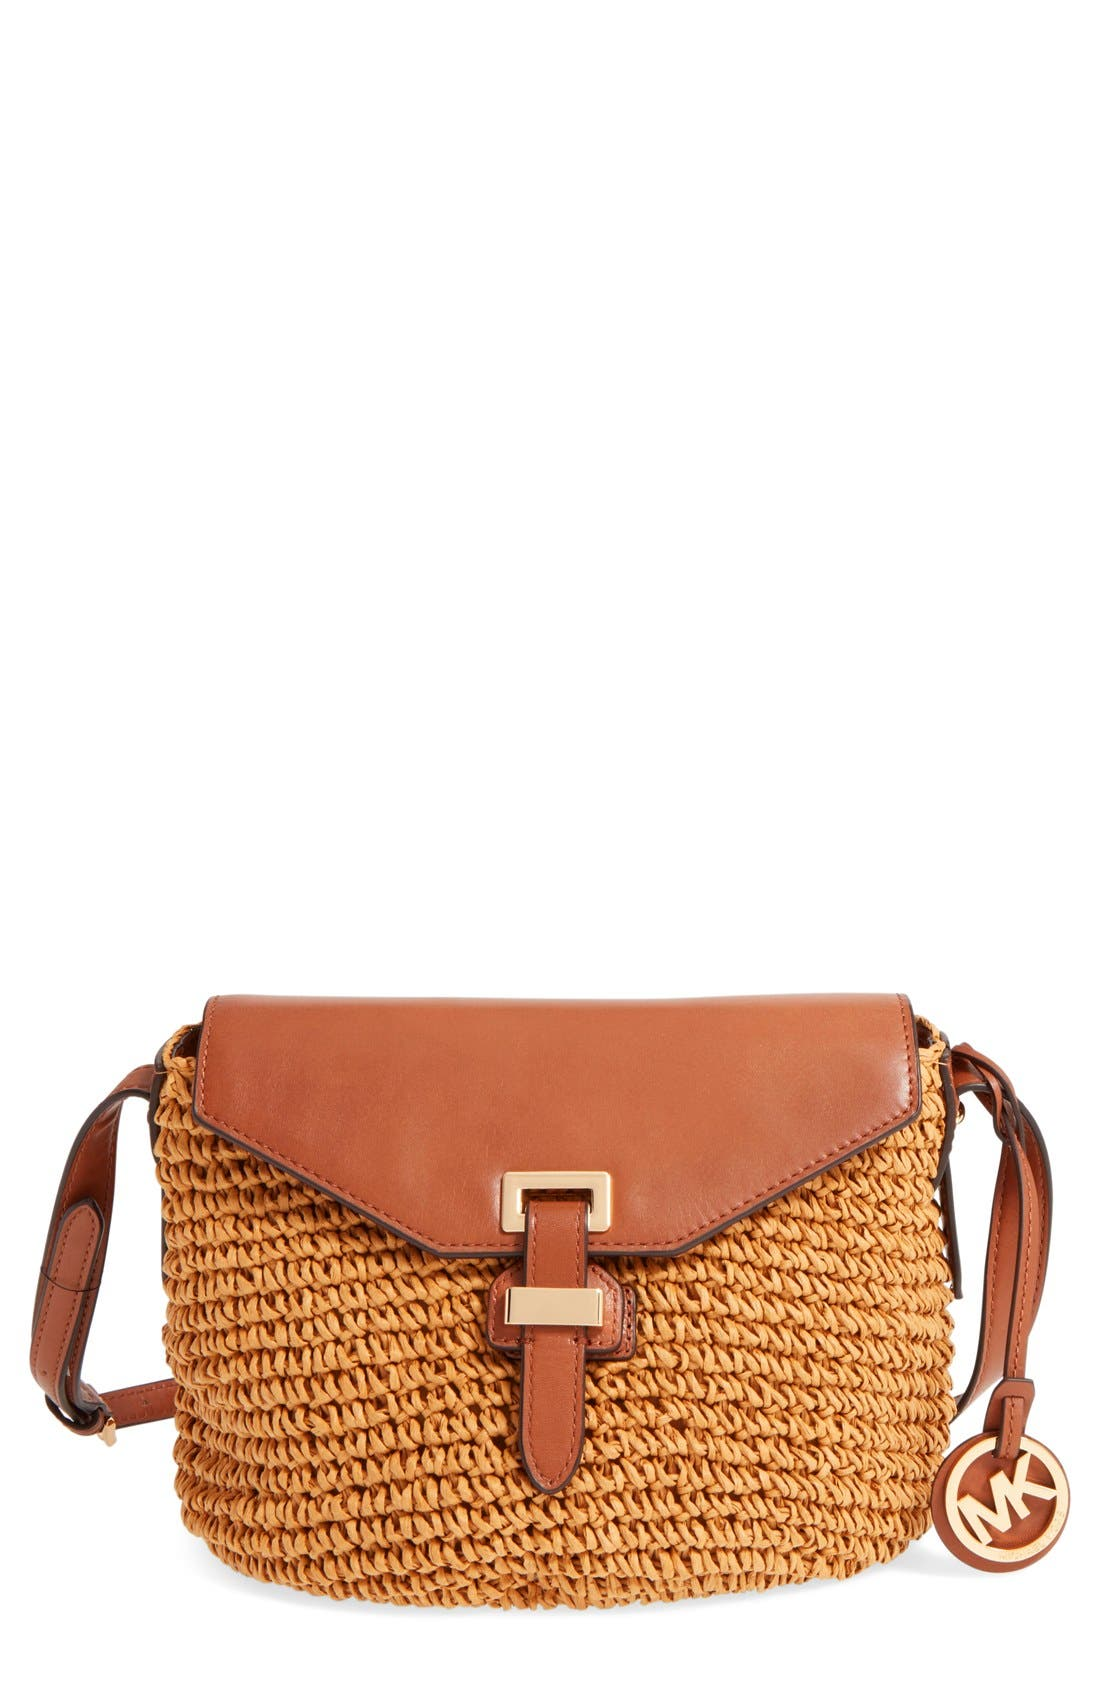 Alternate Image 1 Selected - MICHAEL Michael Kors 'Medium Naomi' Straw & Leather Messenger Bag